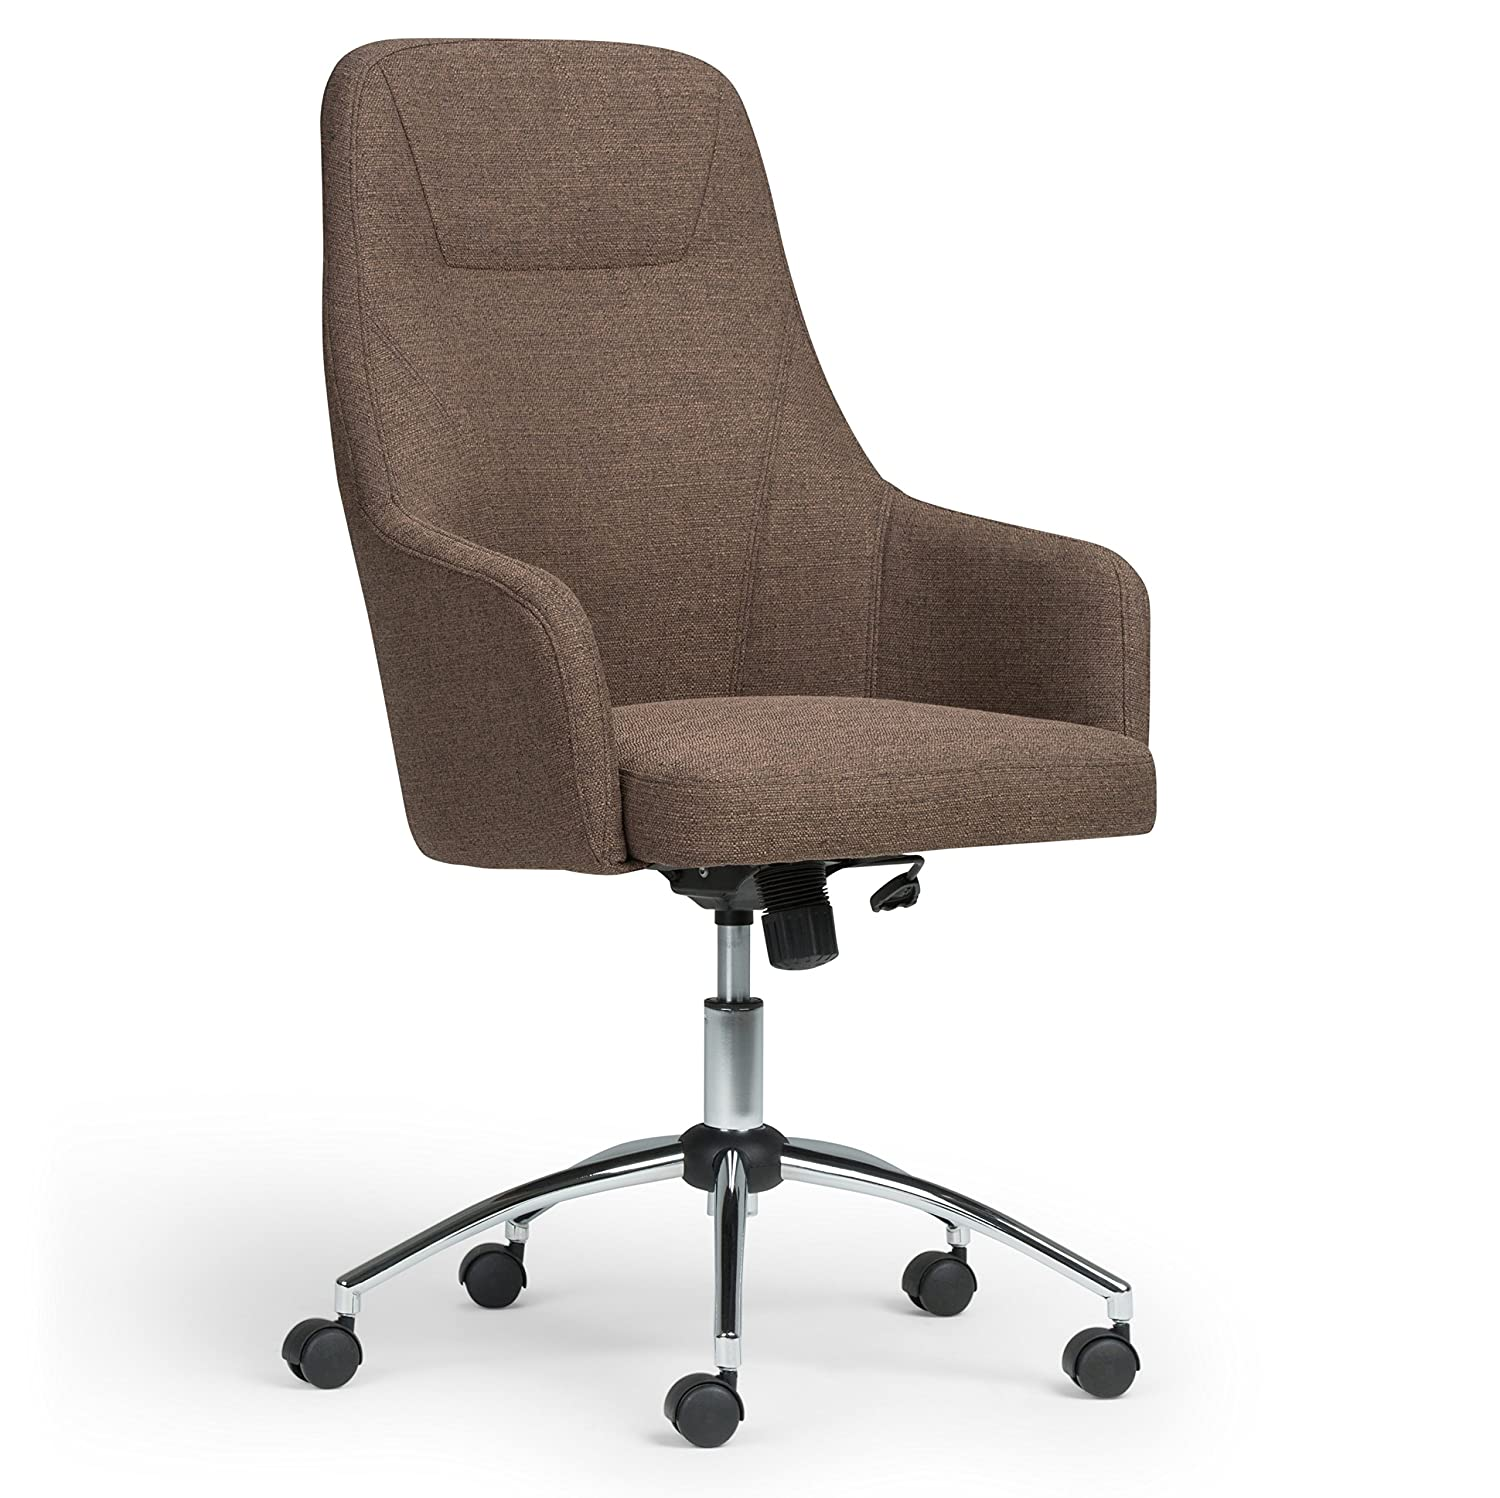 Simpli Home AXCOCHR-04 Jules Swivel Adjustable Executive Computer Office Chair in Chocolate Brown 33